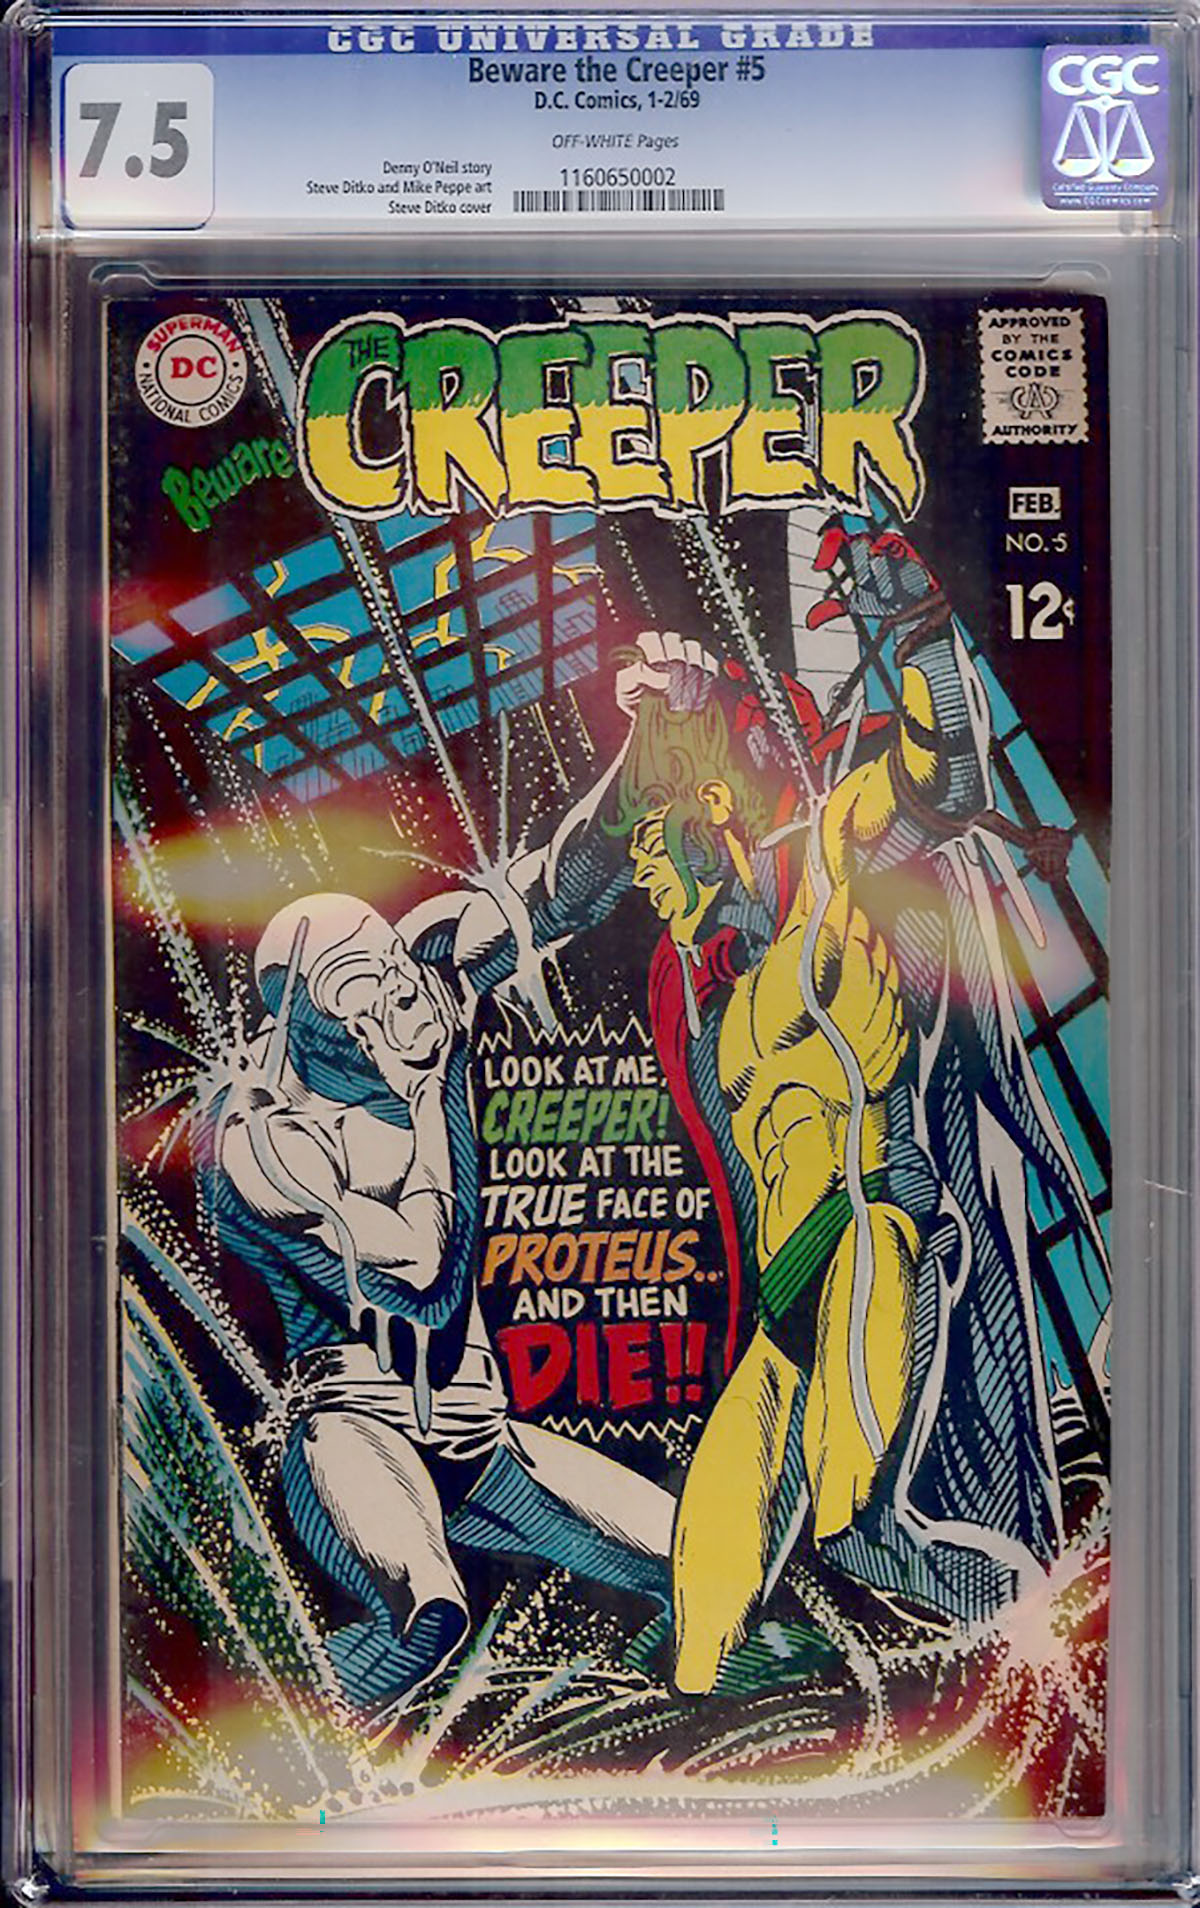 Beware the Creeper #5 CGC 7.5 w